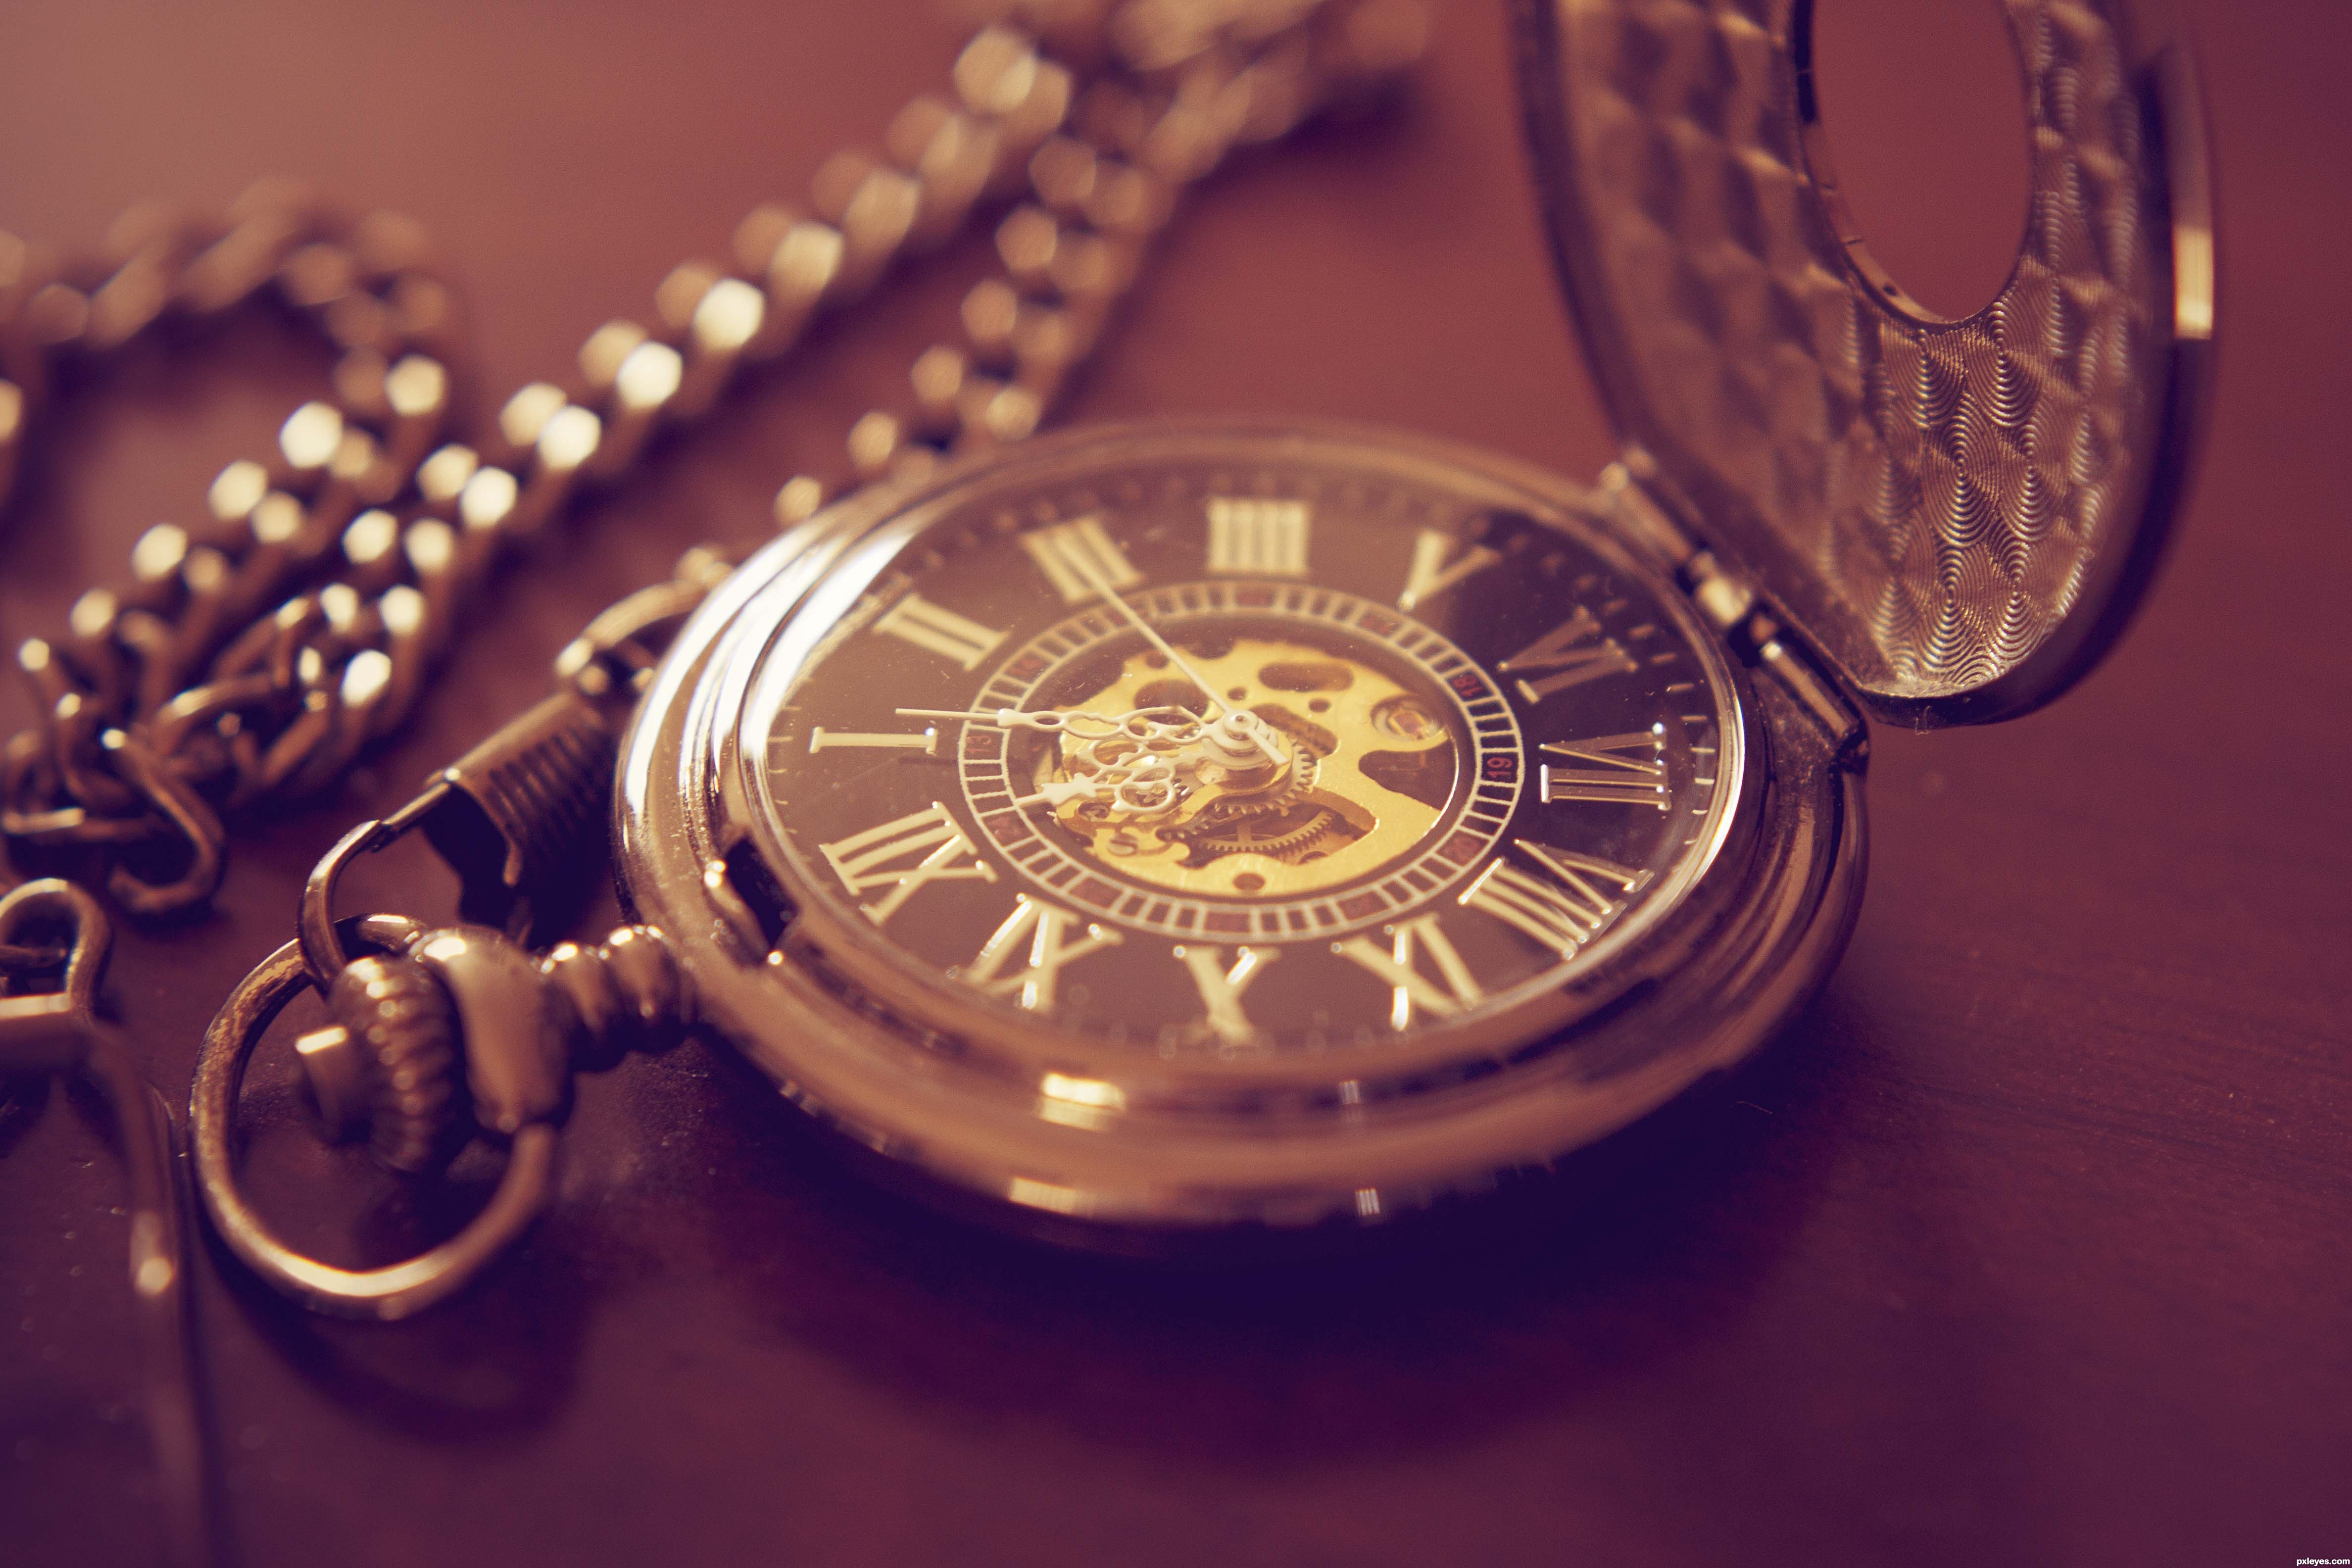 Grandpas Pocket Watch picture, by Mark_Keenan for ...